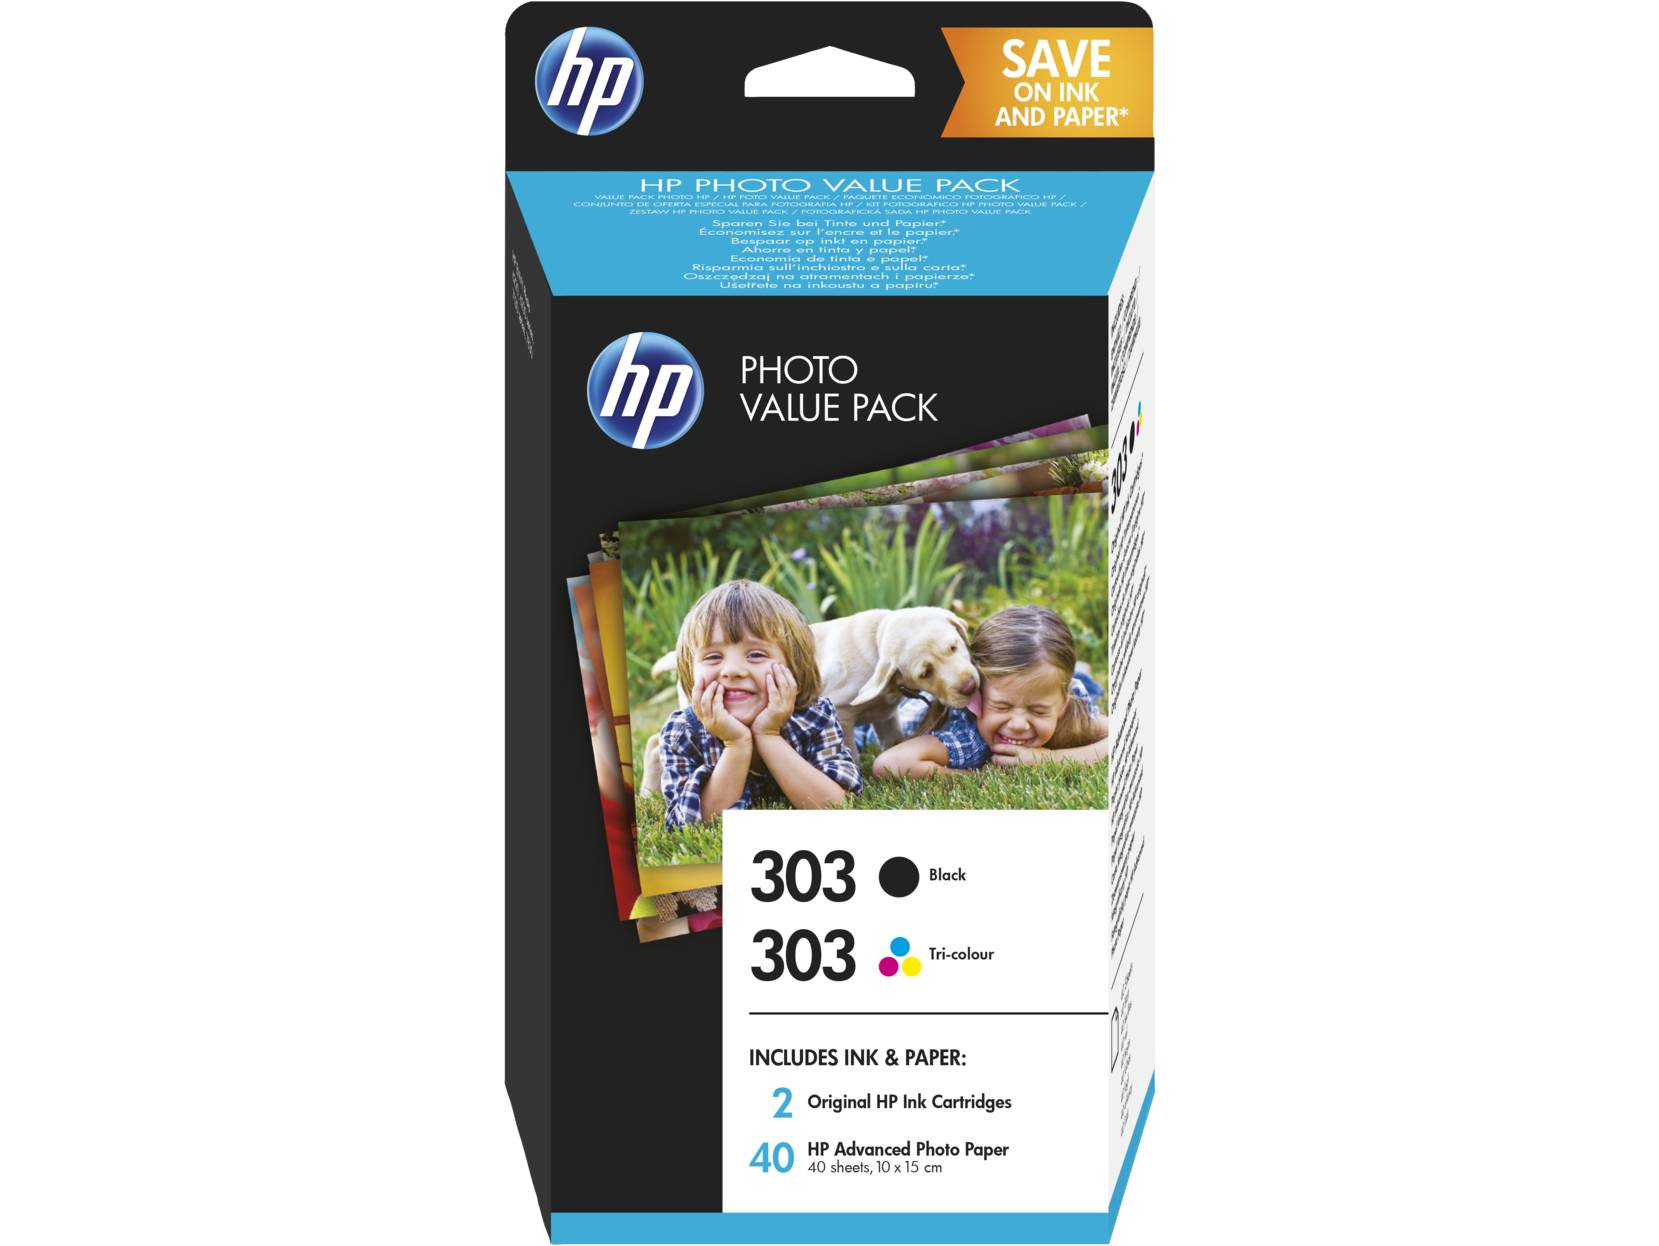 HP 303 Tri-Color Black, Cyan, Magenta, Yellow Ink Cartridge with Glossy 4x6 Photo Value Pack - 40 Sheets